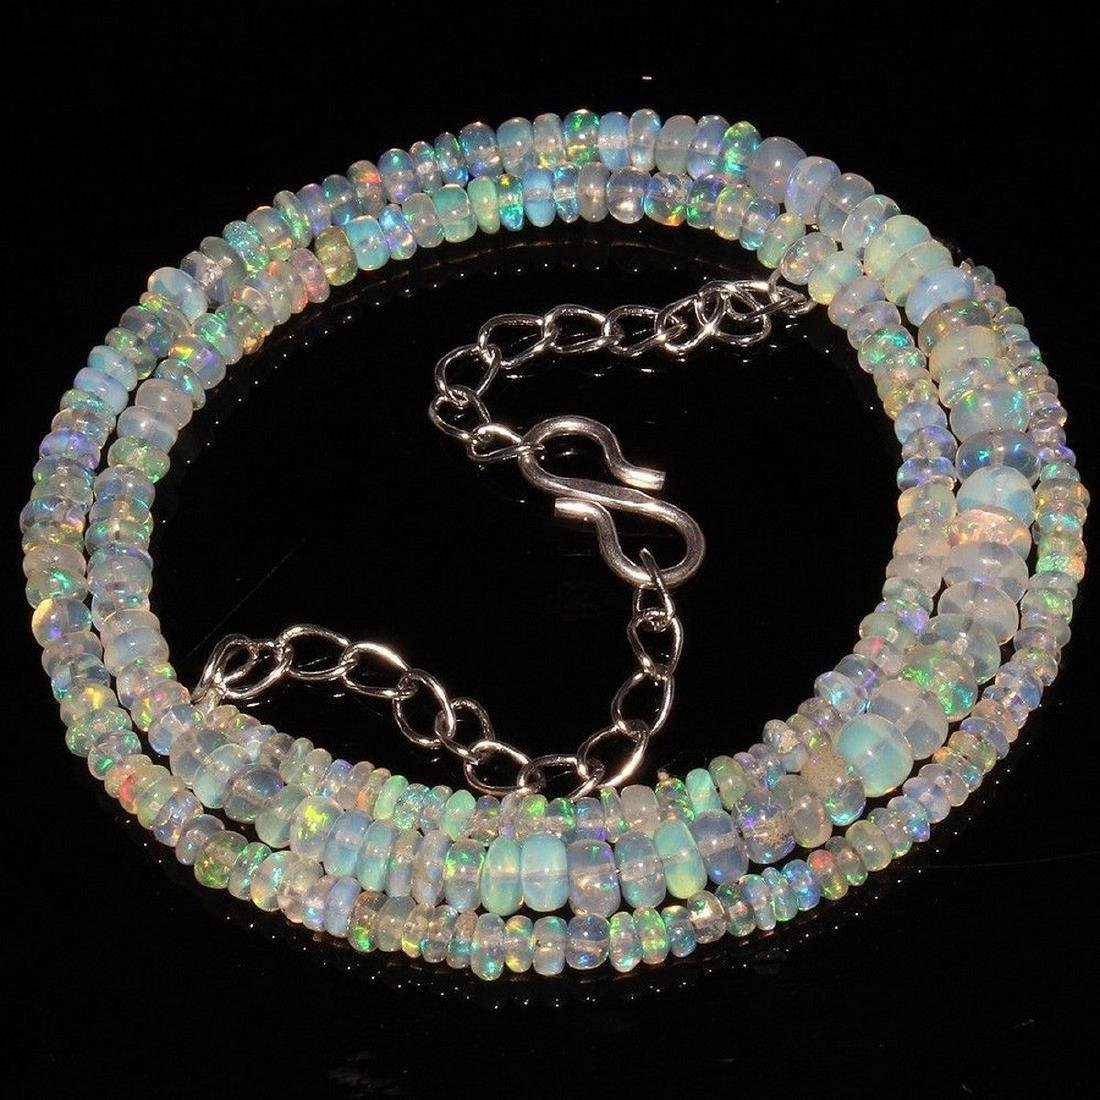 Sterling Silver Ethiopian Opal Bead Necklace, 34ctw - 3